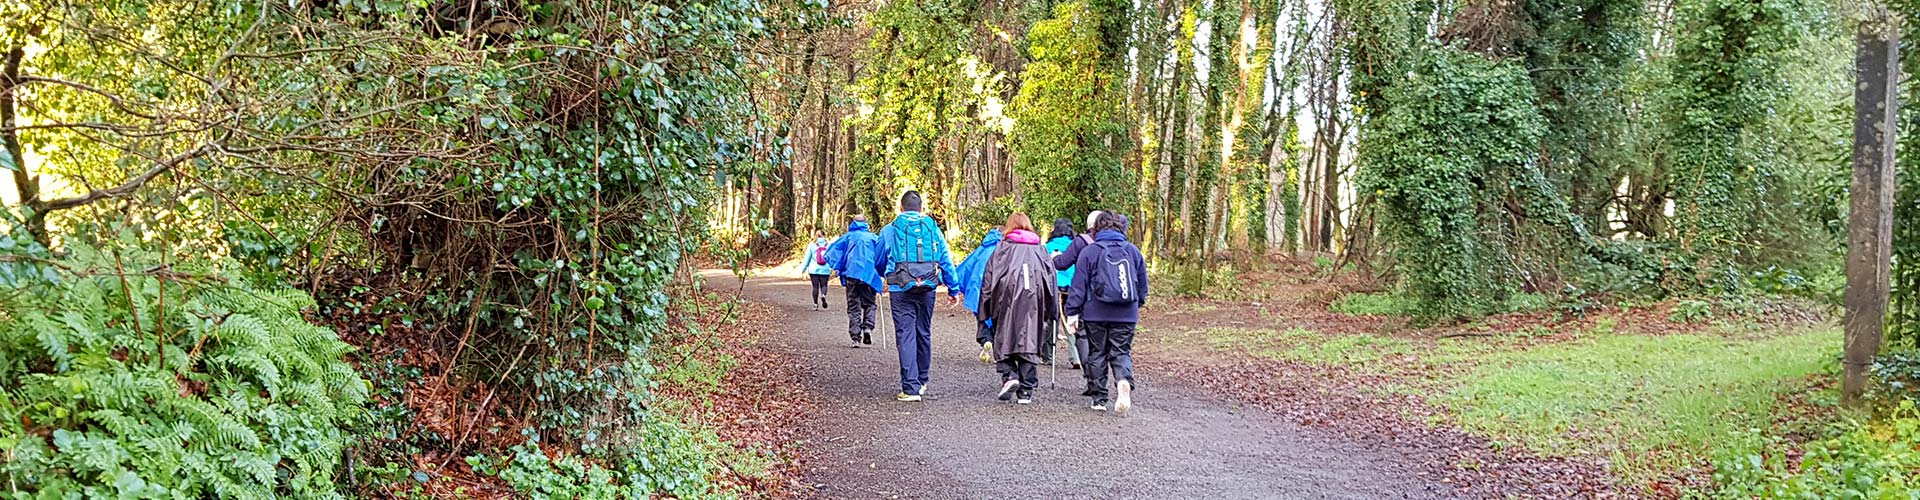 pilgrims walking on the camino trail